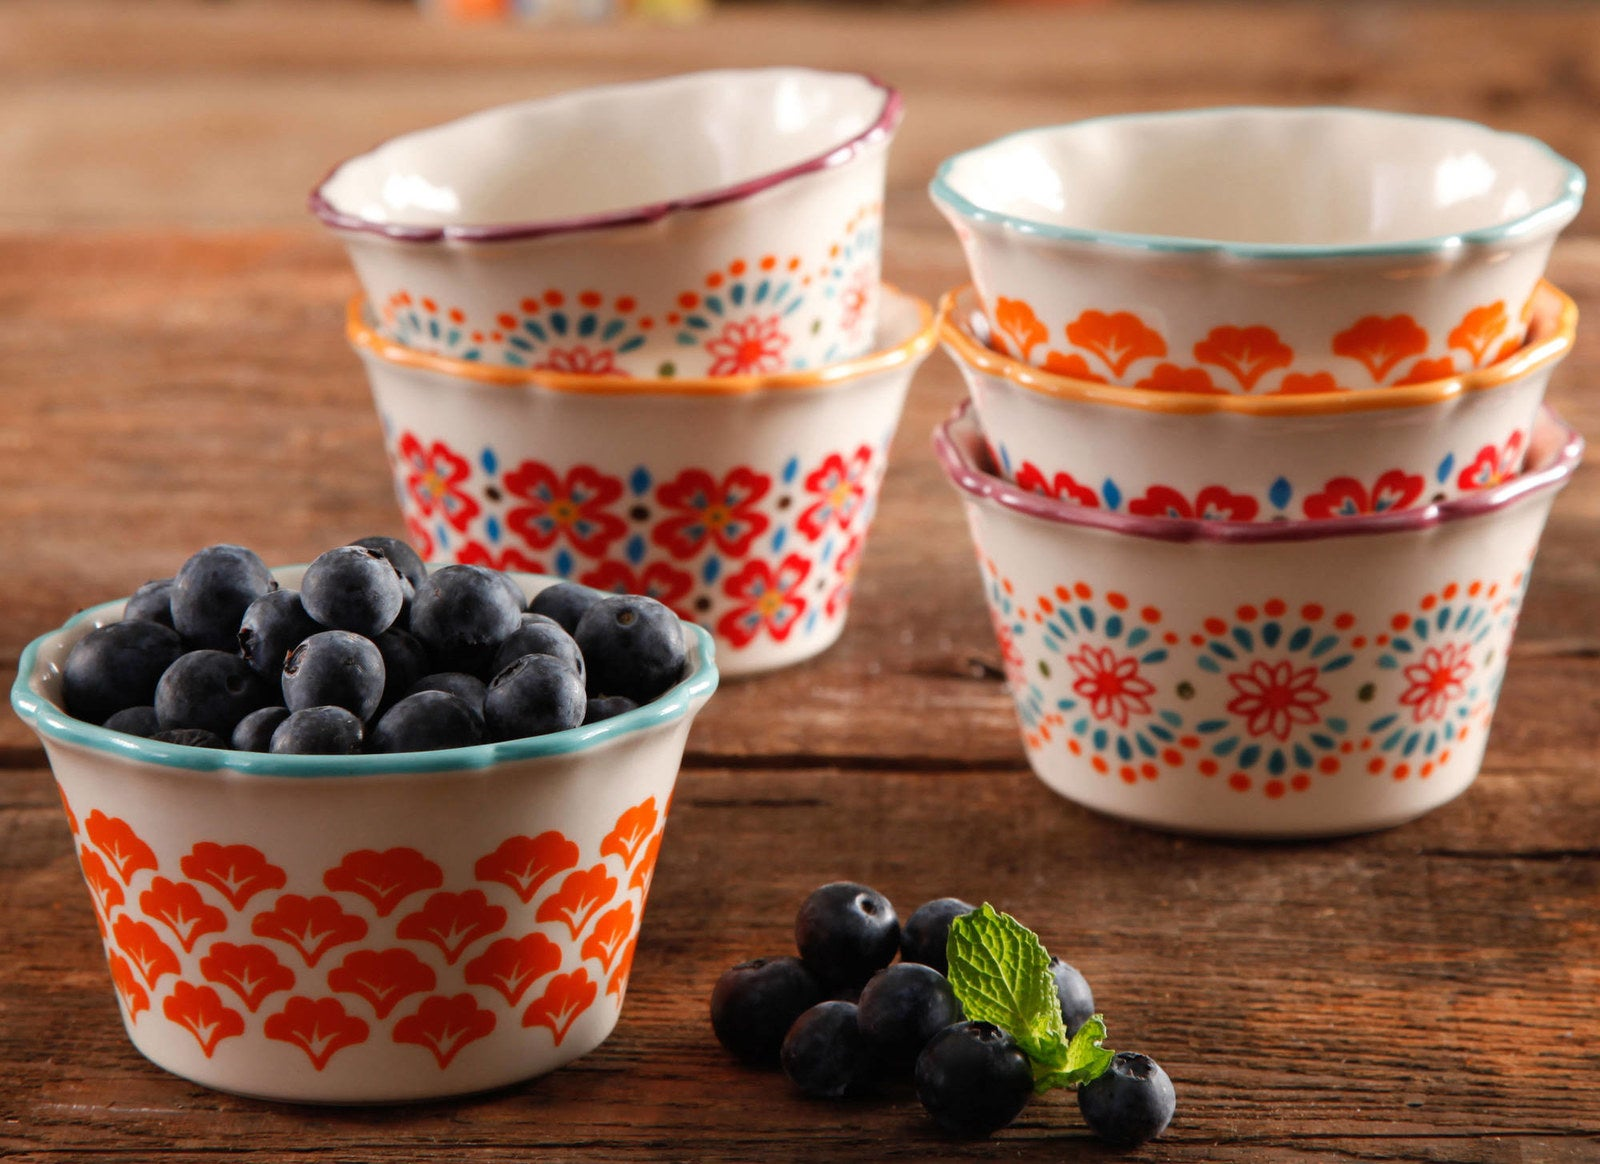 Made of durable stoneware that is dishwasher-, microwave-, and oven-safe!Get them from Walmart for $9.99 (originally $11.52).